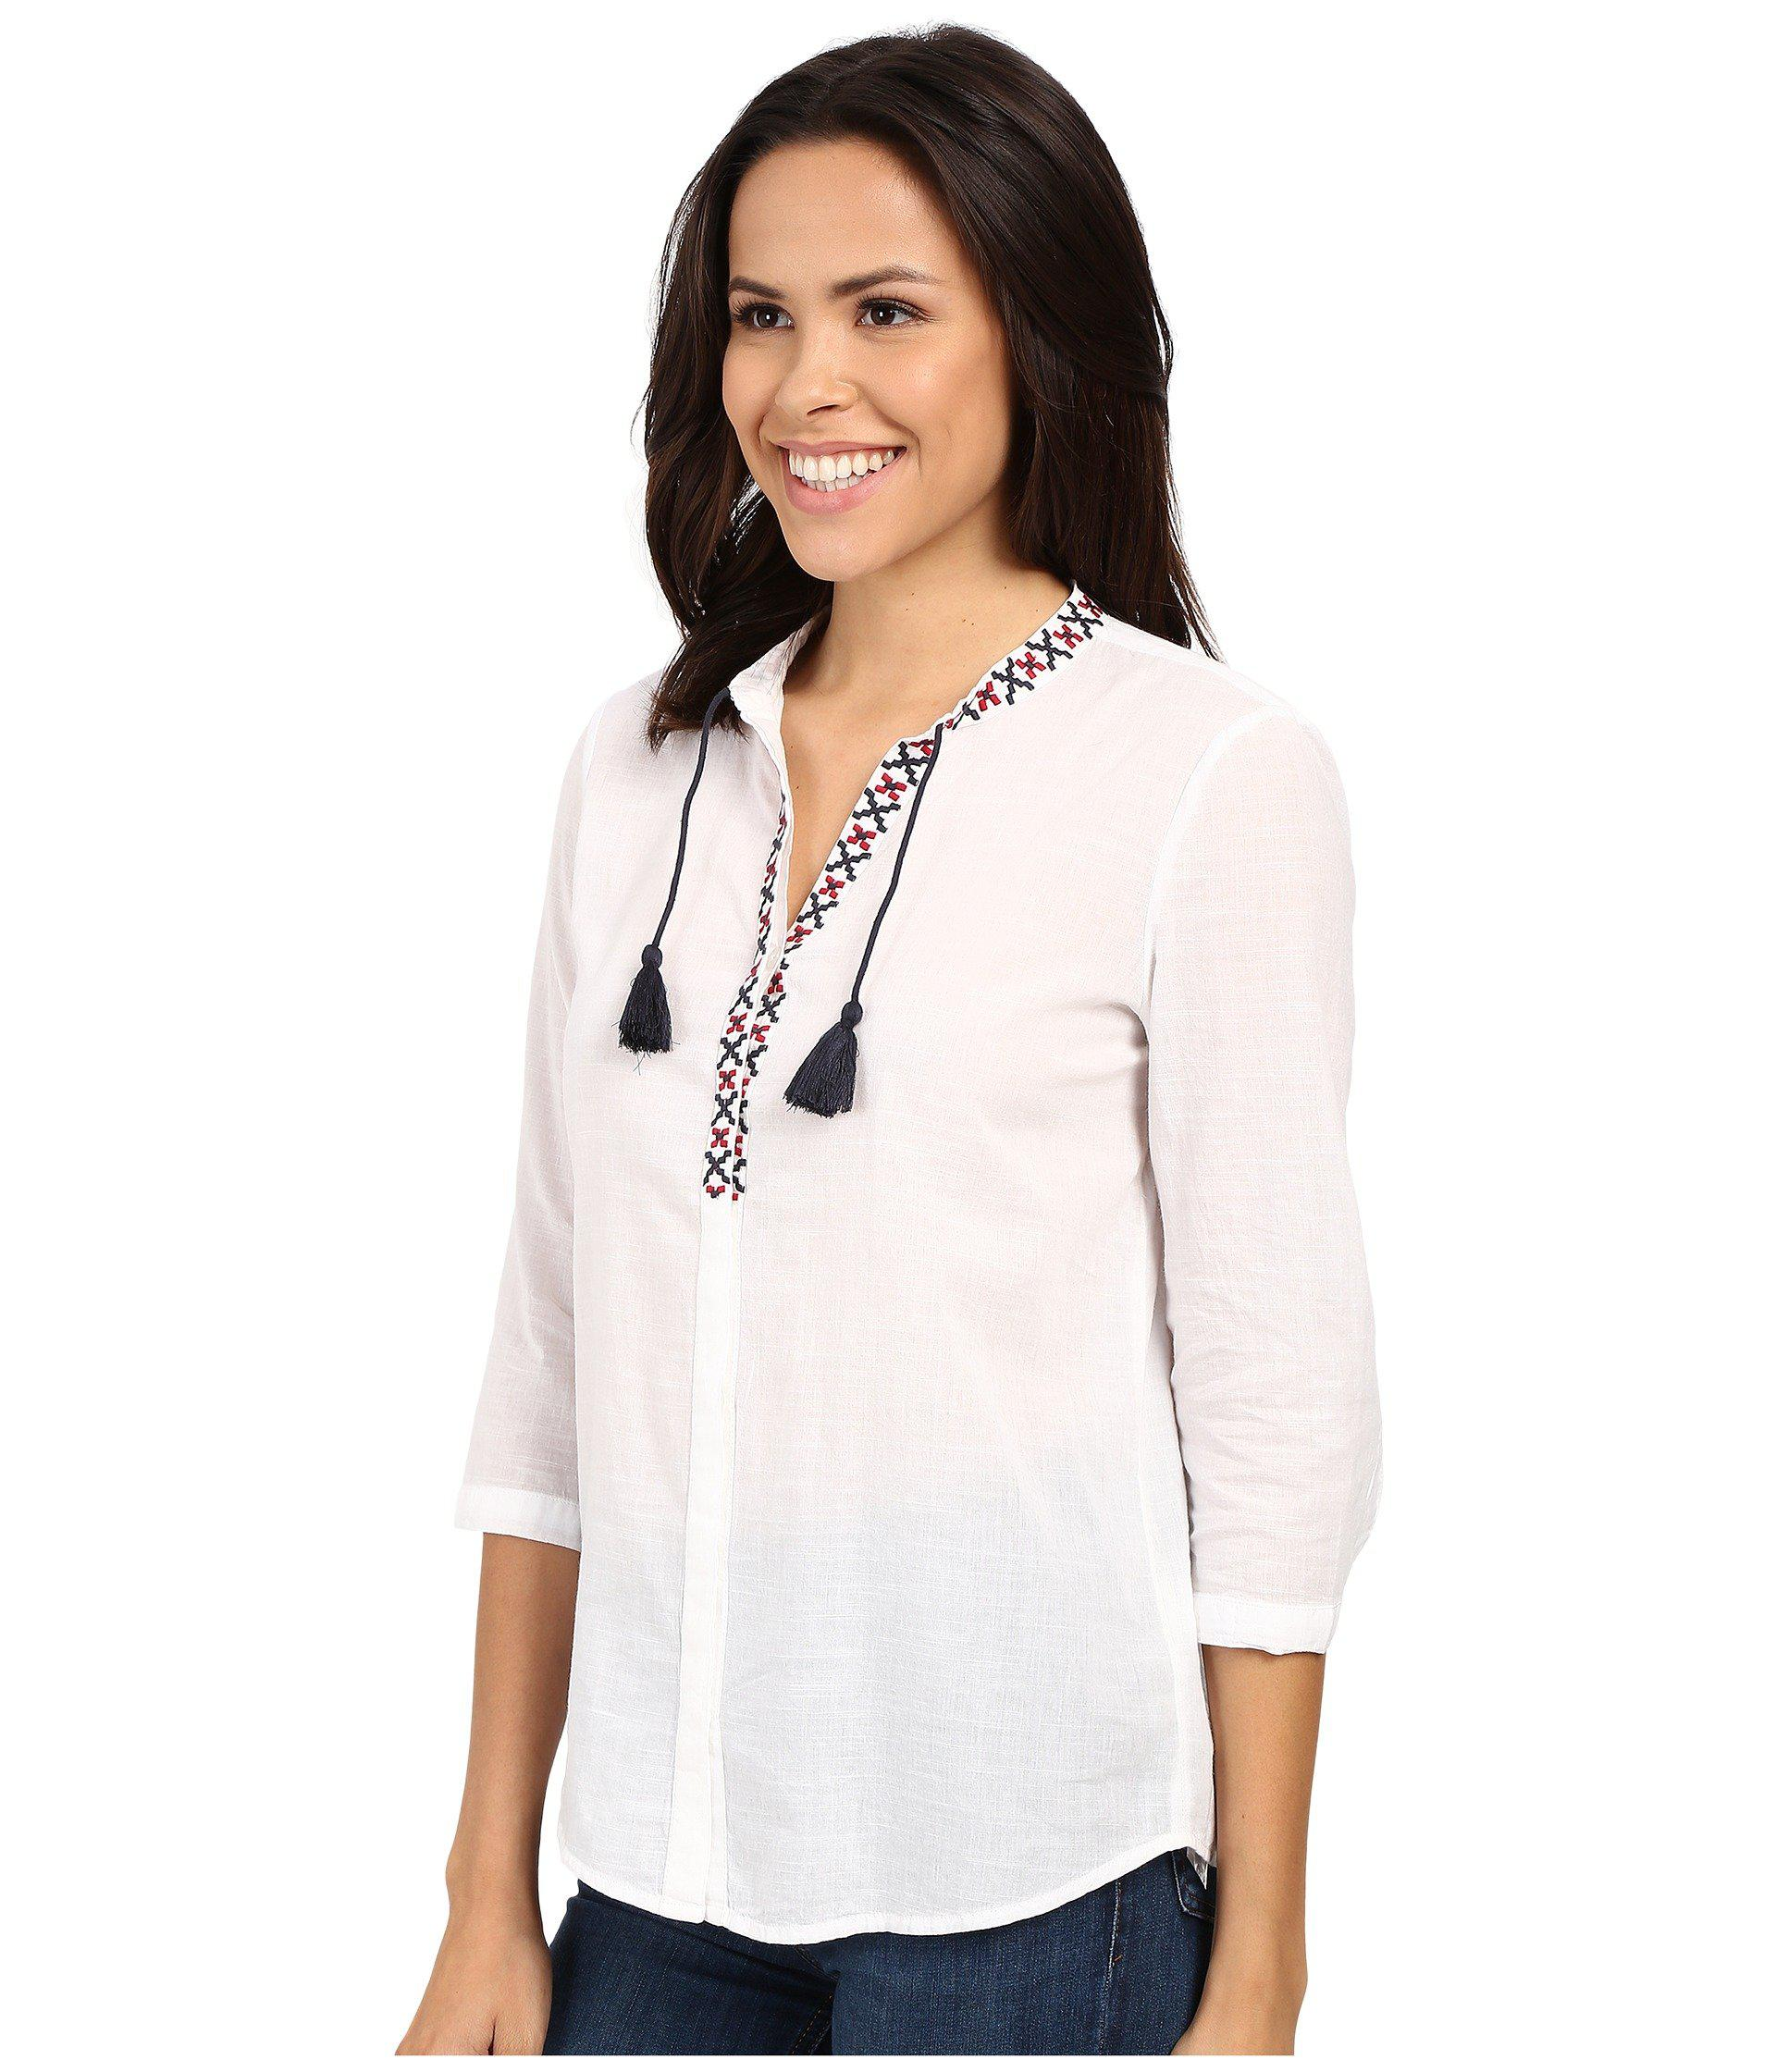 8a5b1fe08f11dd Lyst - Mavi Jeans 3 4 Sleeve Embroidered Tassle Top in White